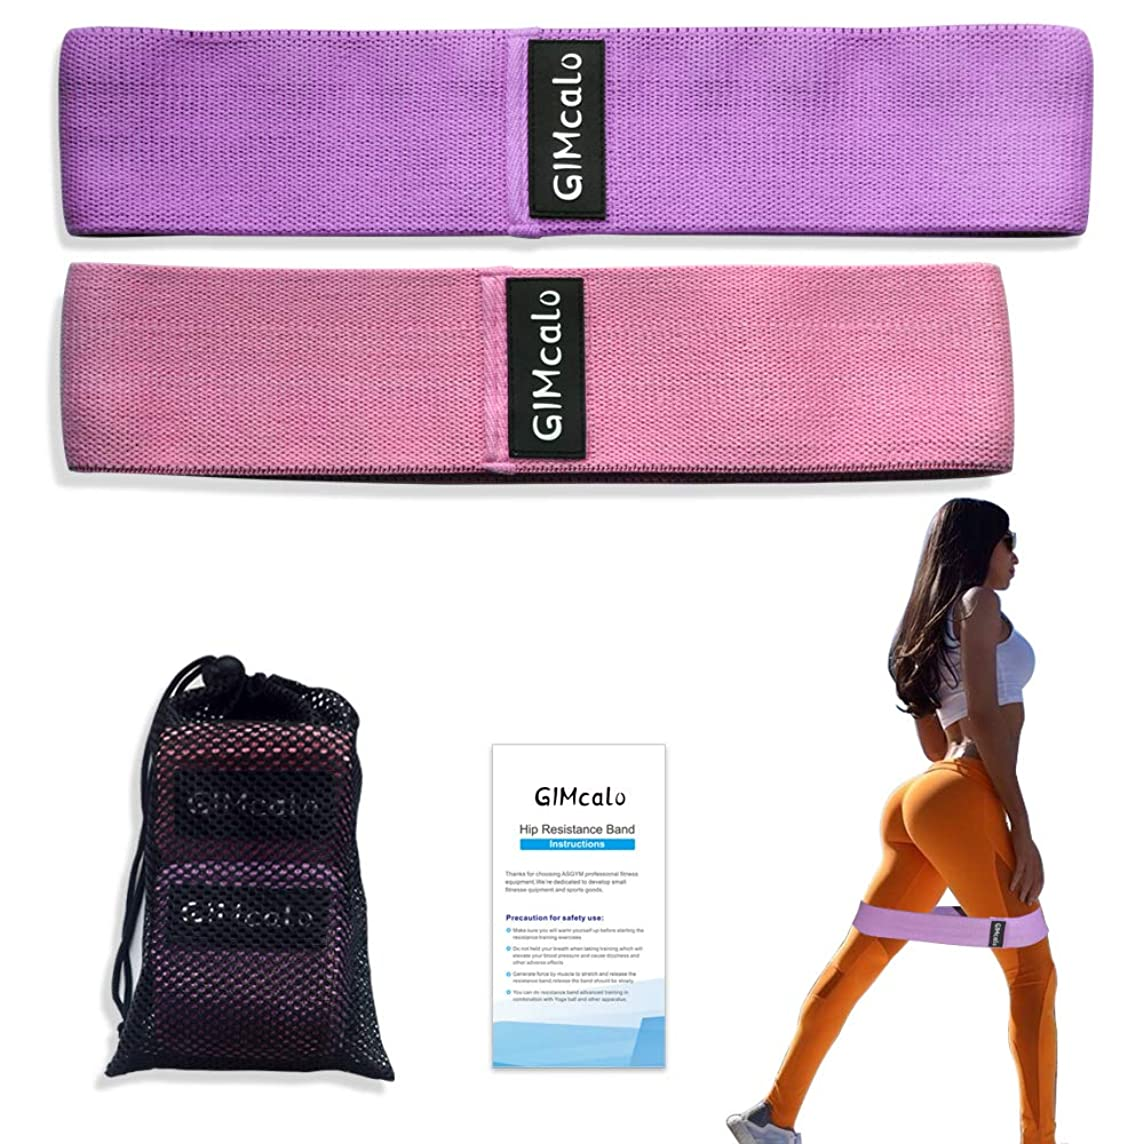 GIMcalo Glute Bands Hip Resistance Bands Workout Bands Exercise, Booty Circle Resistance Bands for Legs and Butt, Non-Slip Heavy Fabric Hip Band for Women Men, Thigh Loop Set of 2